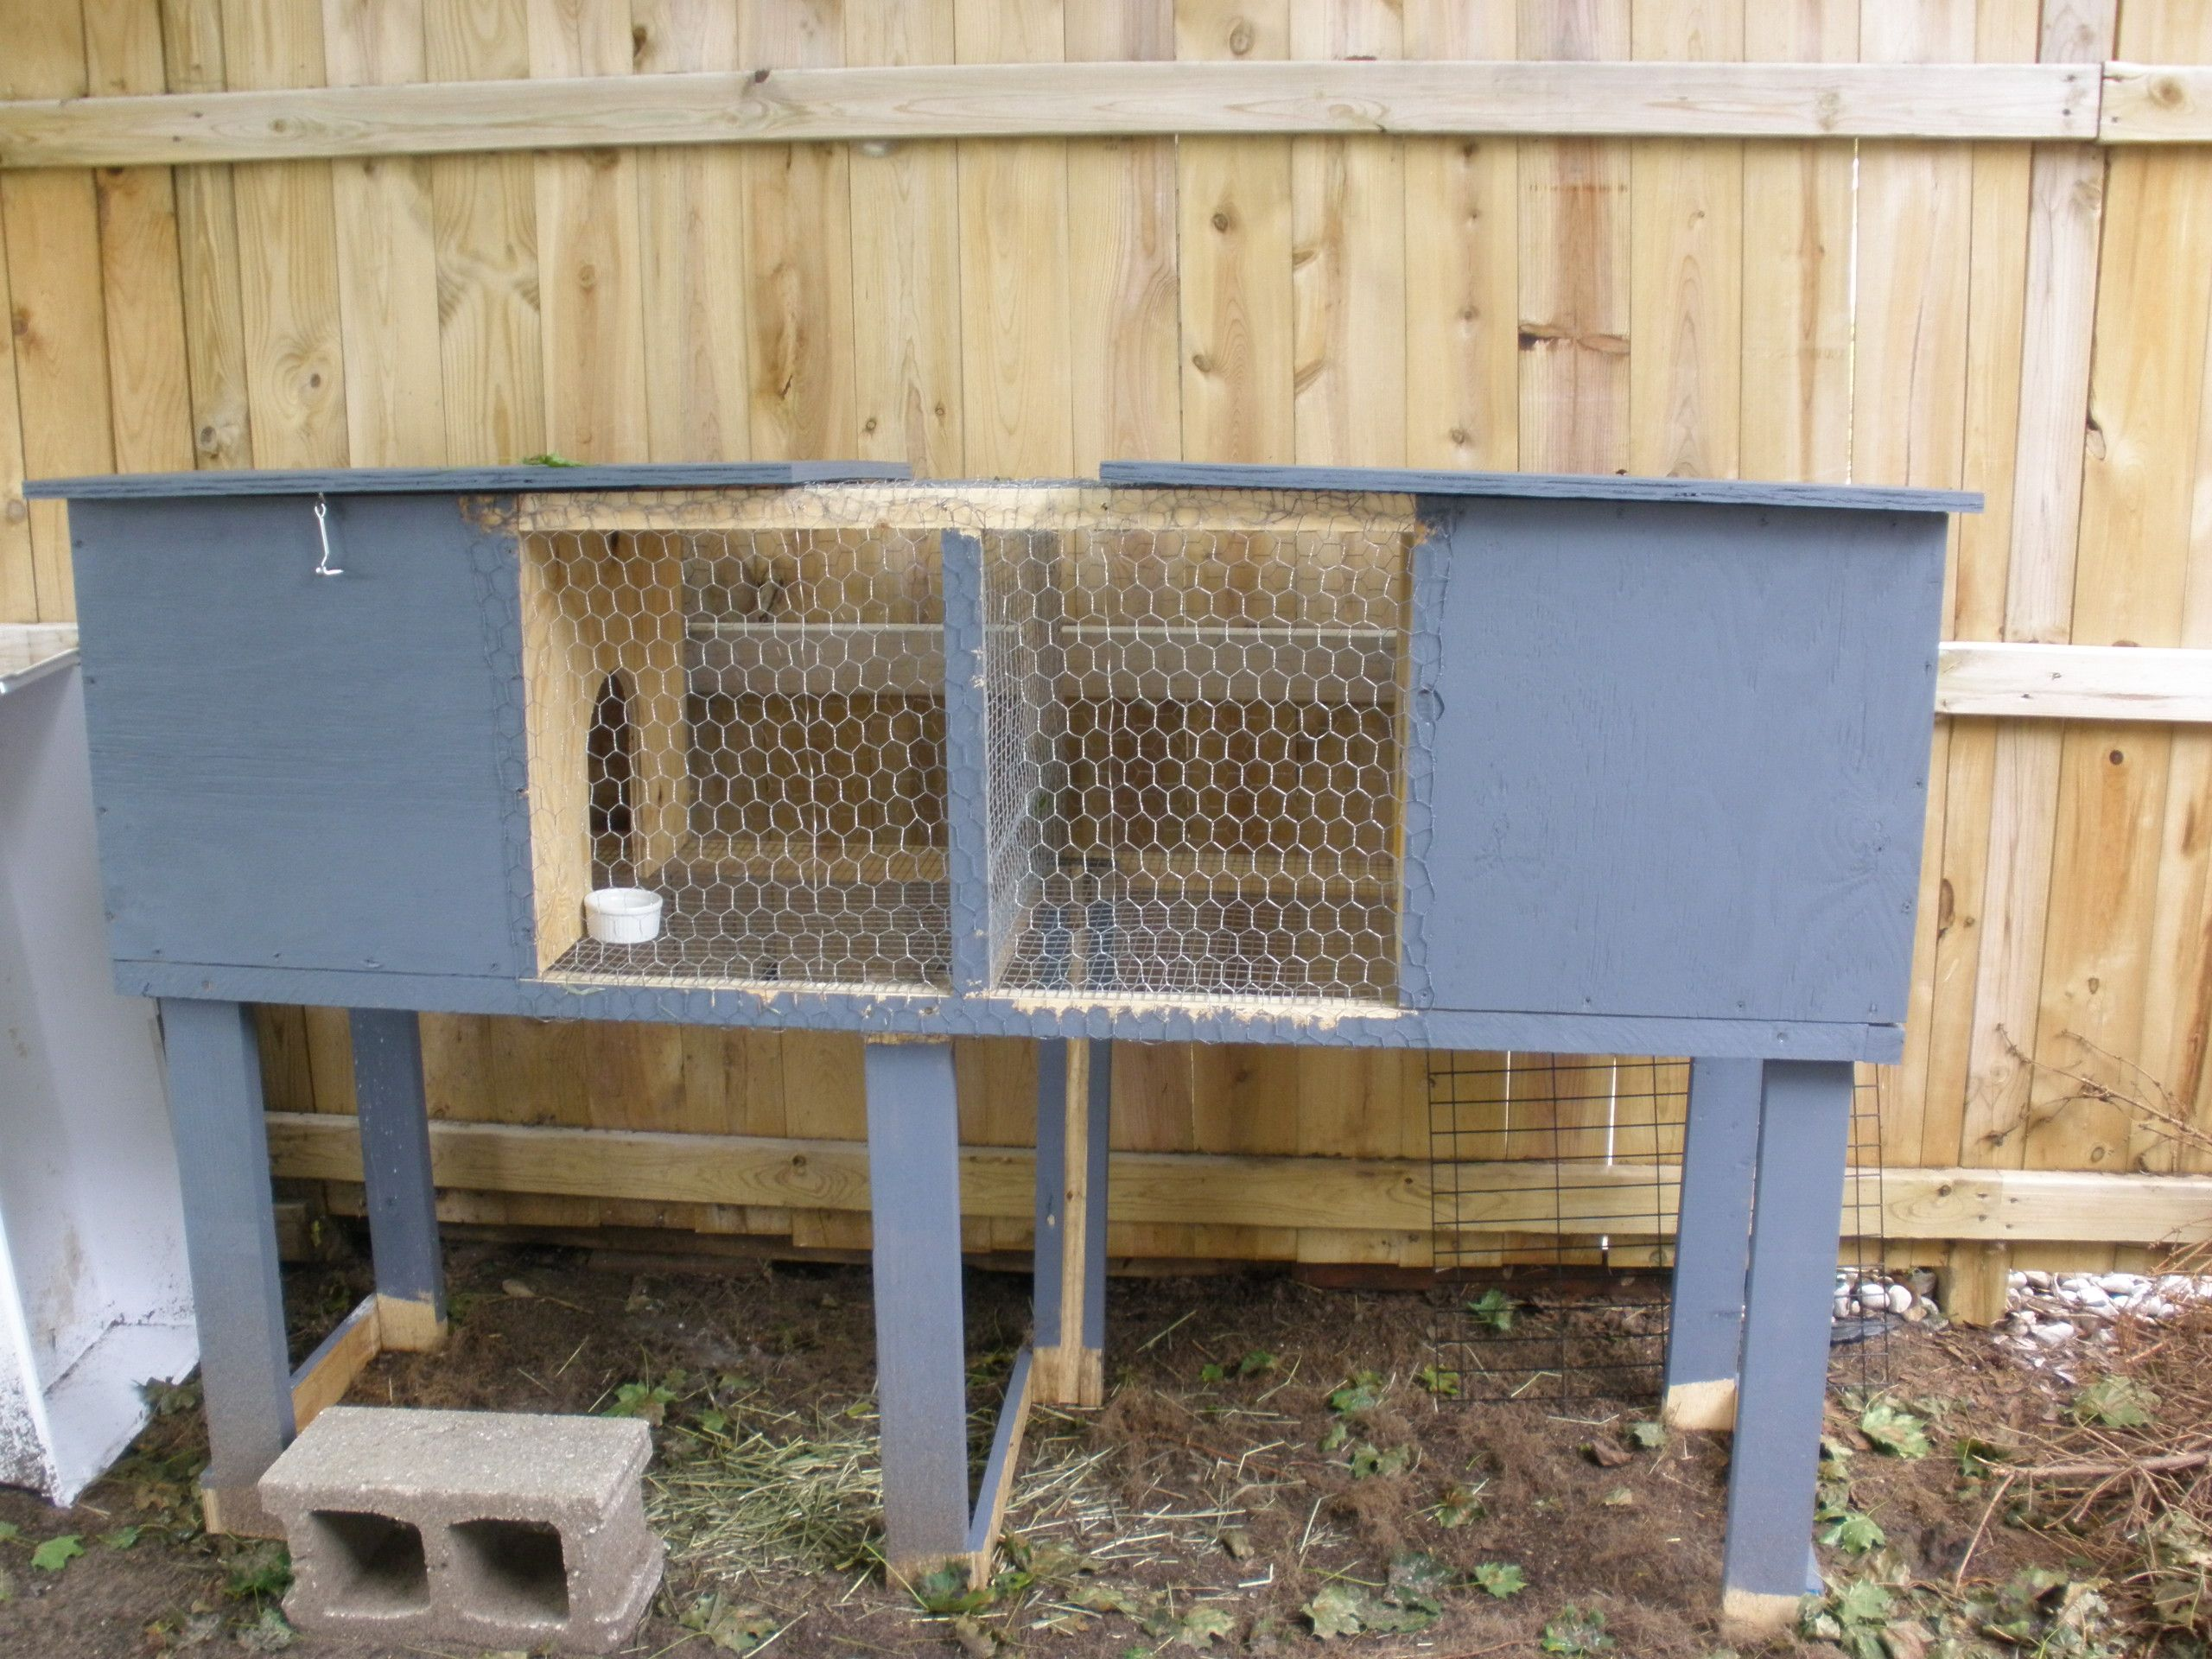 amazing with featuring pin wooden a hutch run underneath rabbit shutter solid wood